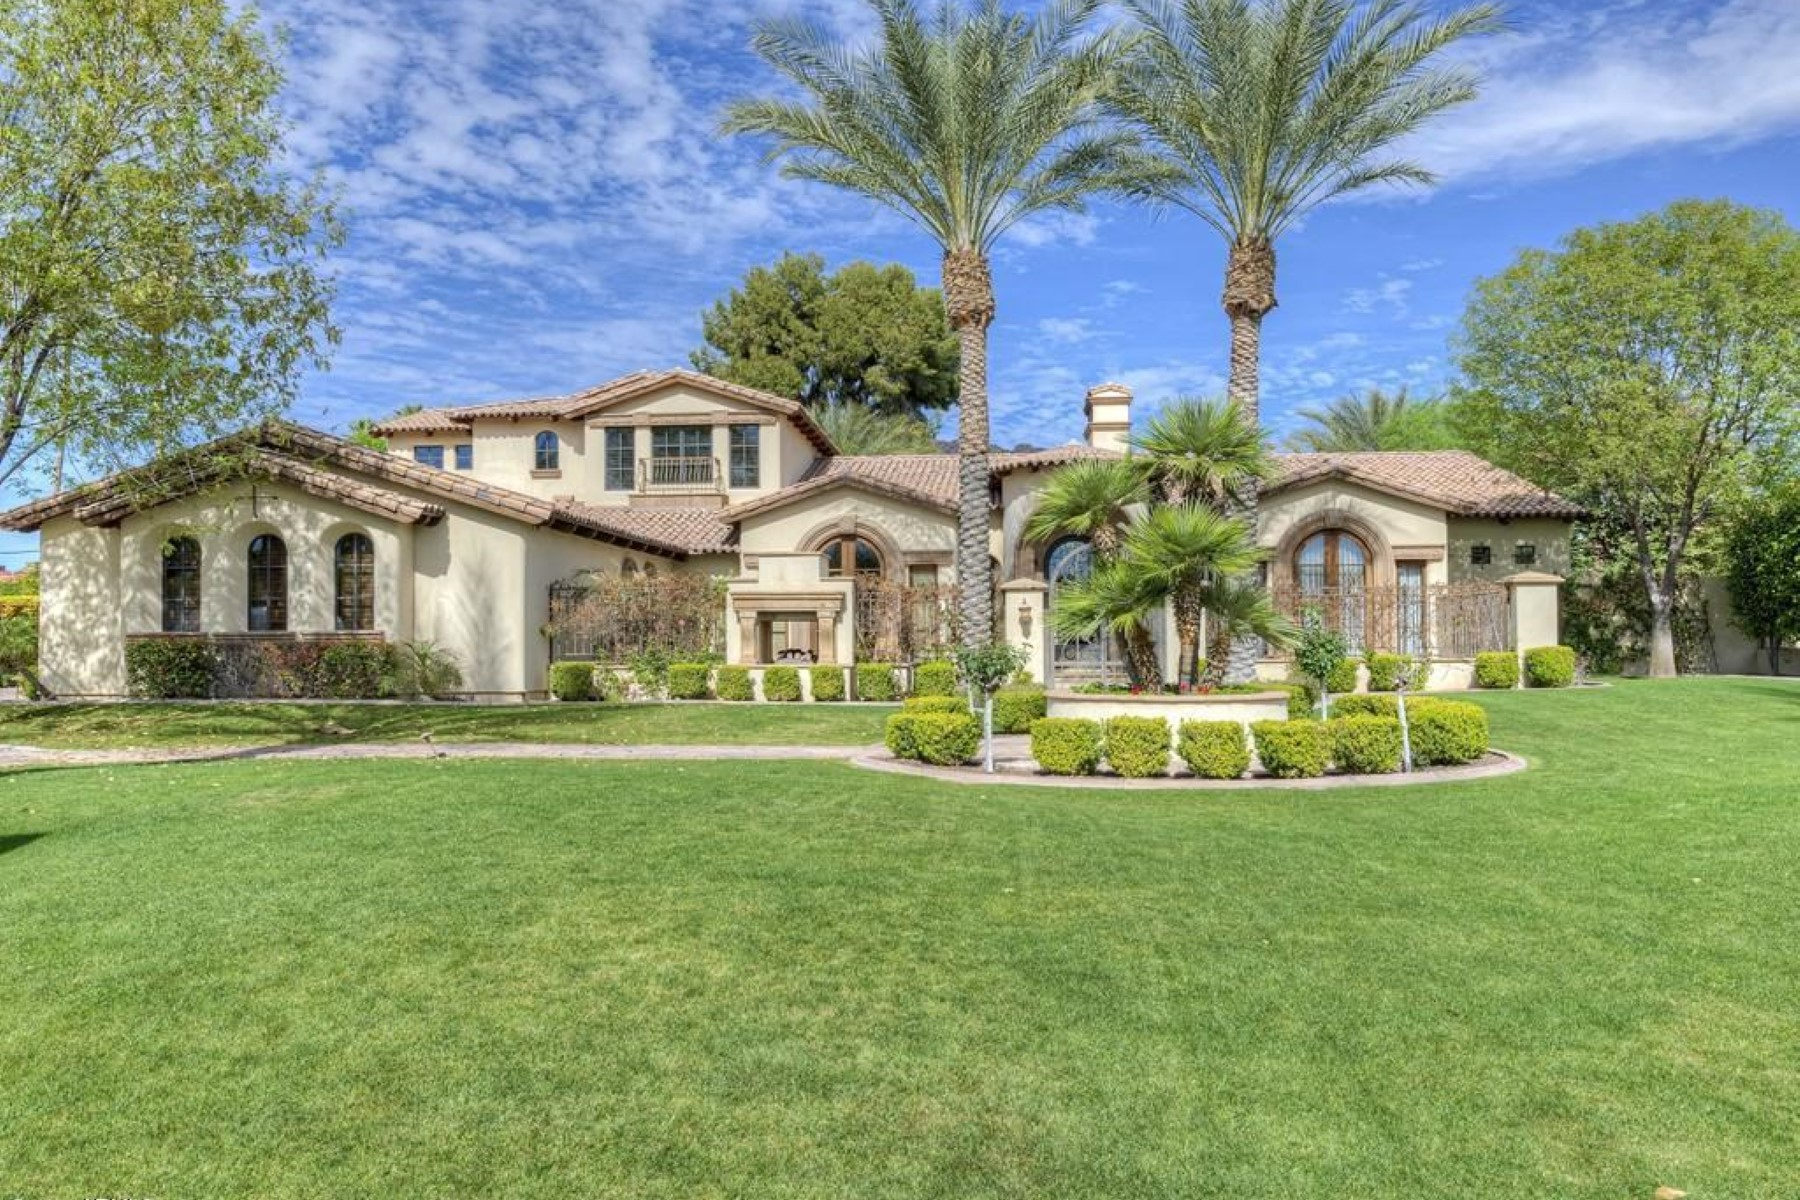 Single Family Home for Sale at An incredible custom home in the heart of Arcadia 5844 E LAFAYETTE BLVD Phoenix, Arizona 85018 United States